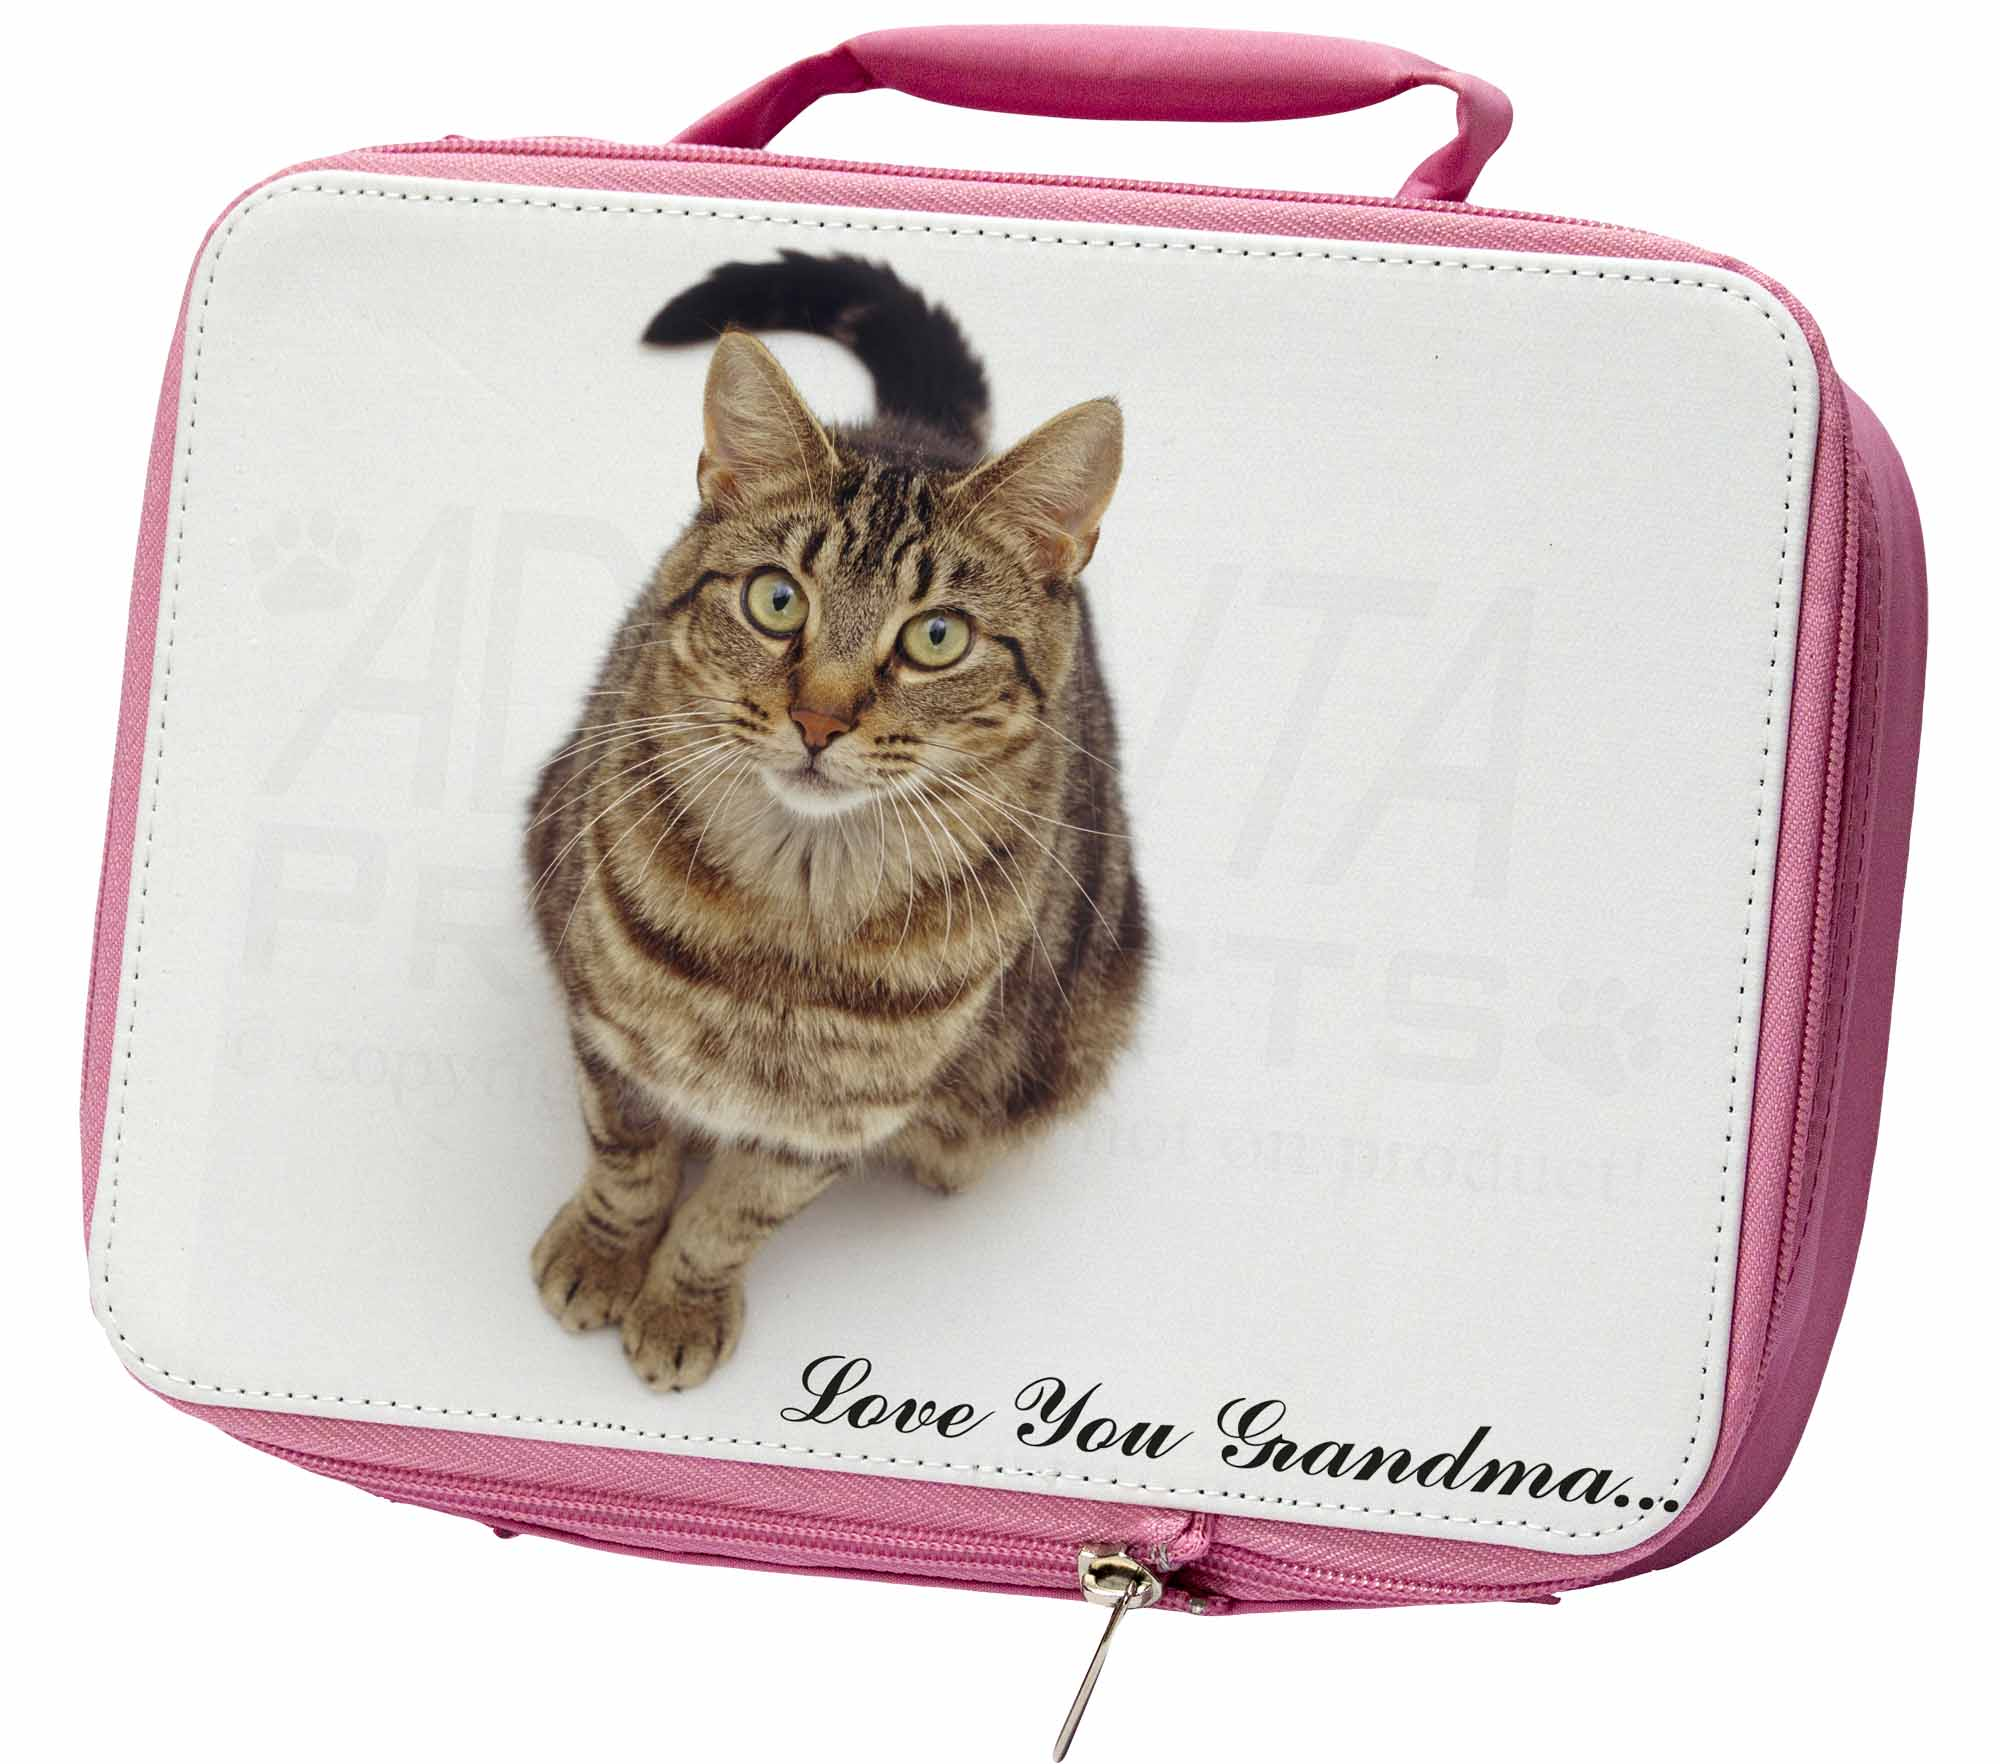 Brown Tabby Cat 'Love You Grandma' Insulated Pink School Lunch Box, AC160lygLBP